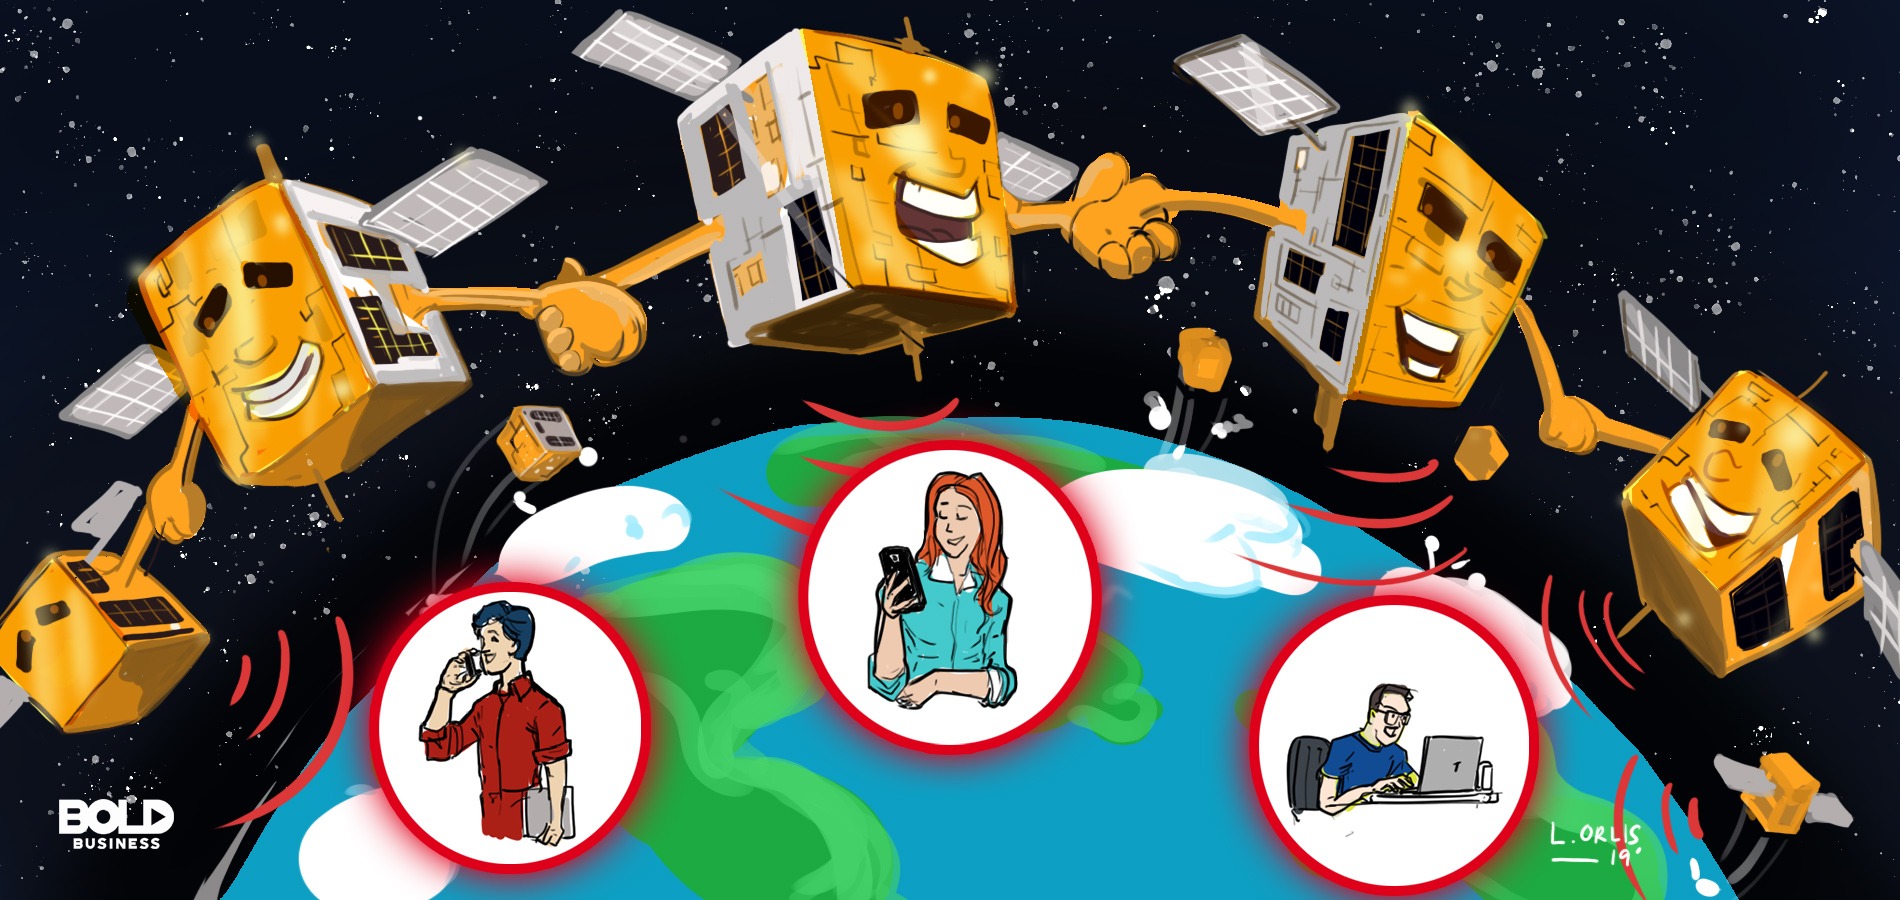 cartoon of small satellites emerging beside big satellites orbiting around the earth